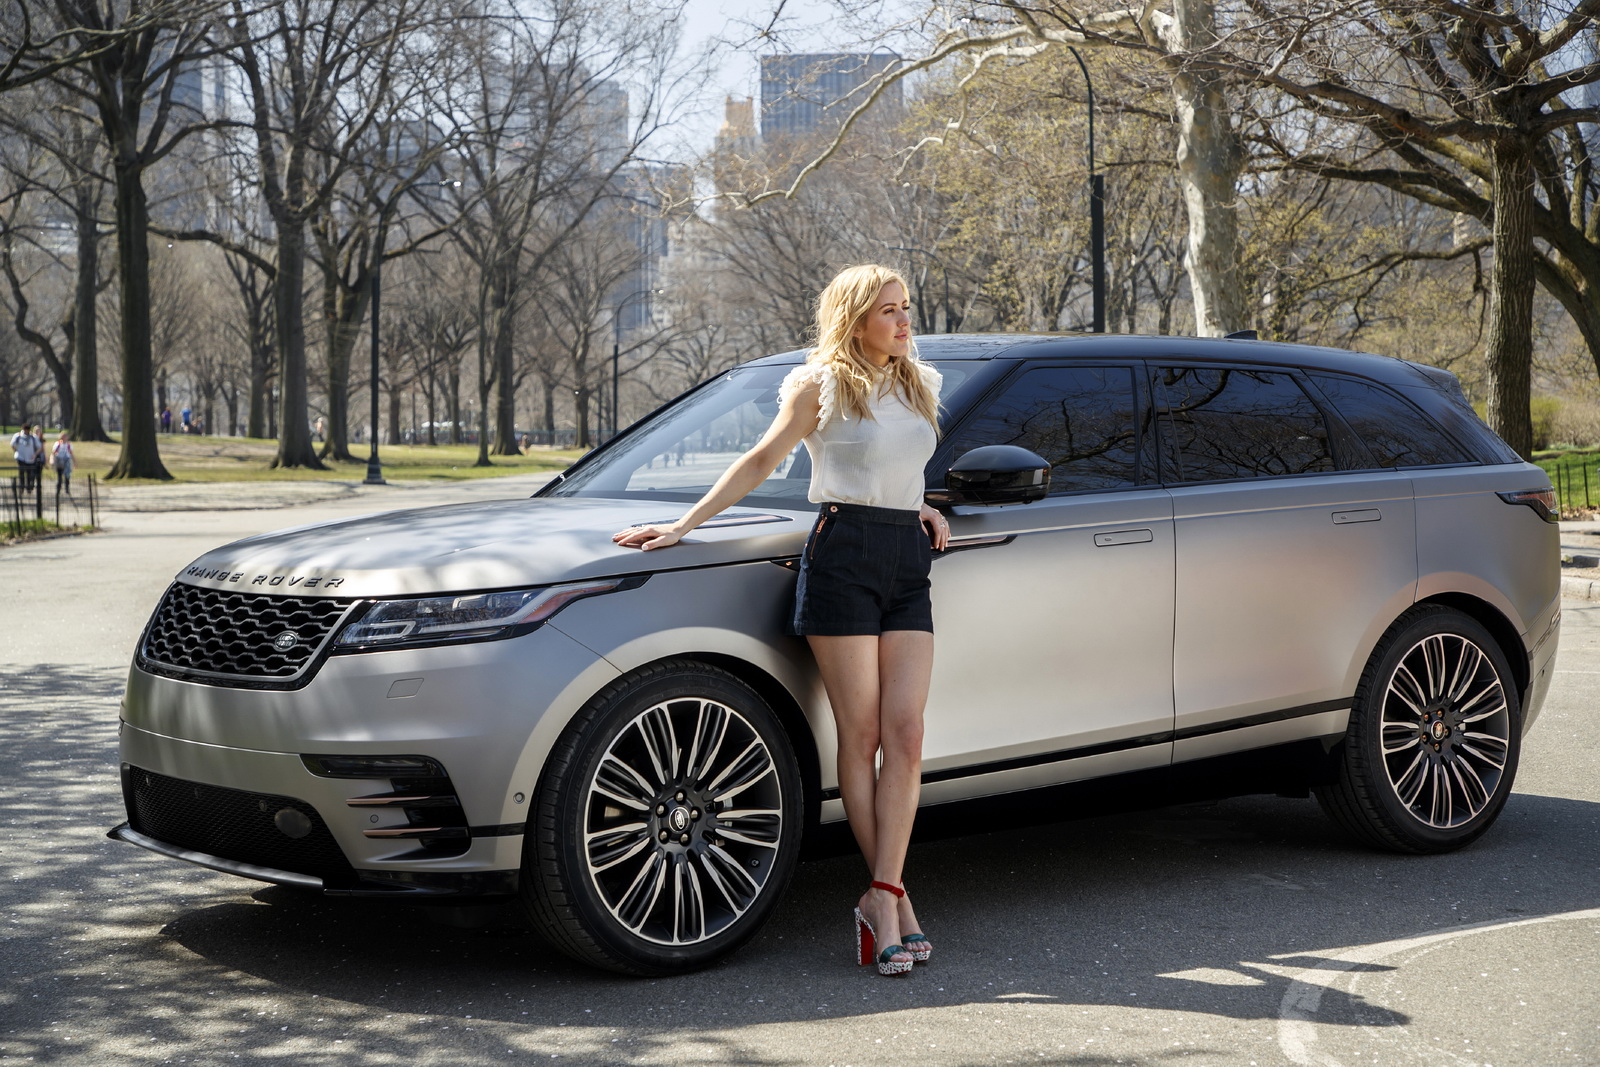 Range Rover Velar Lands In The U S At The Hands Of Singer